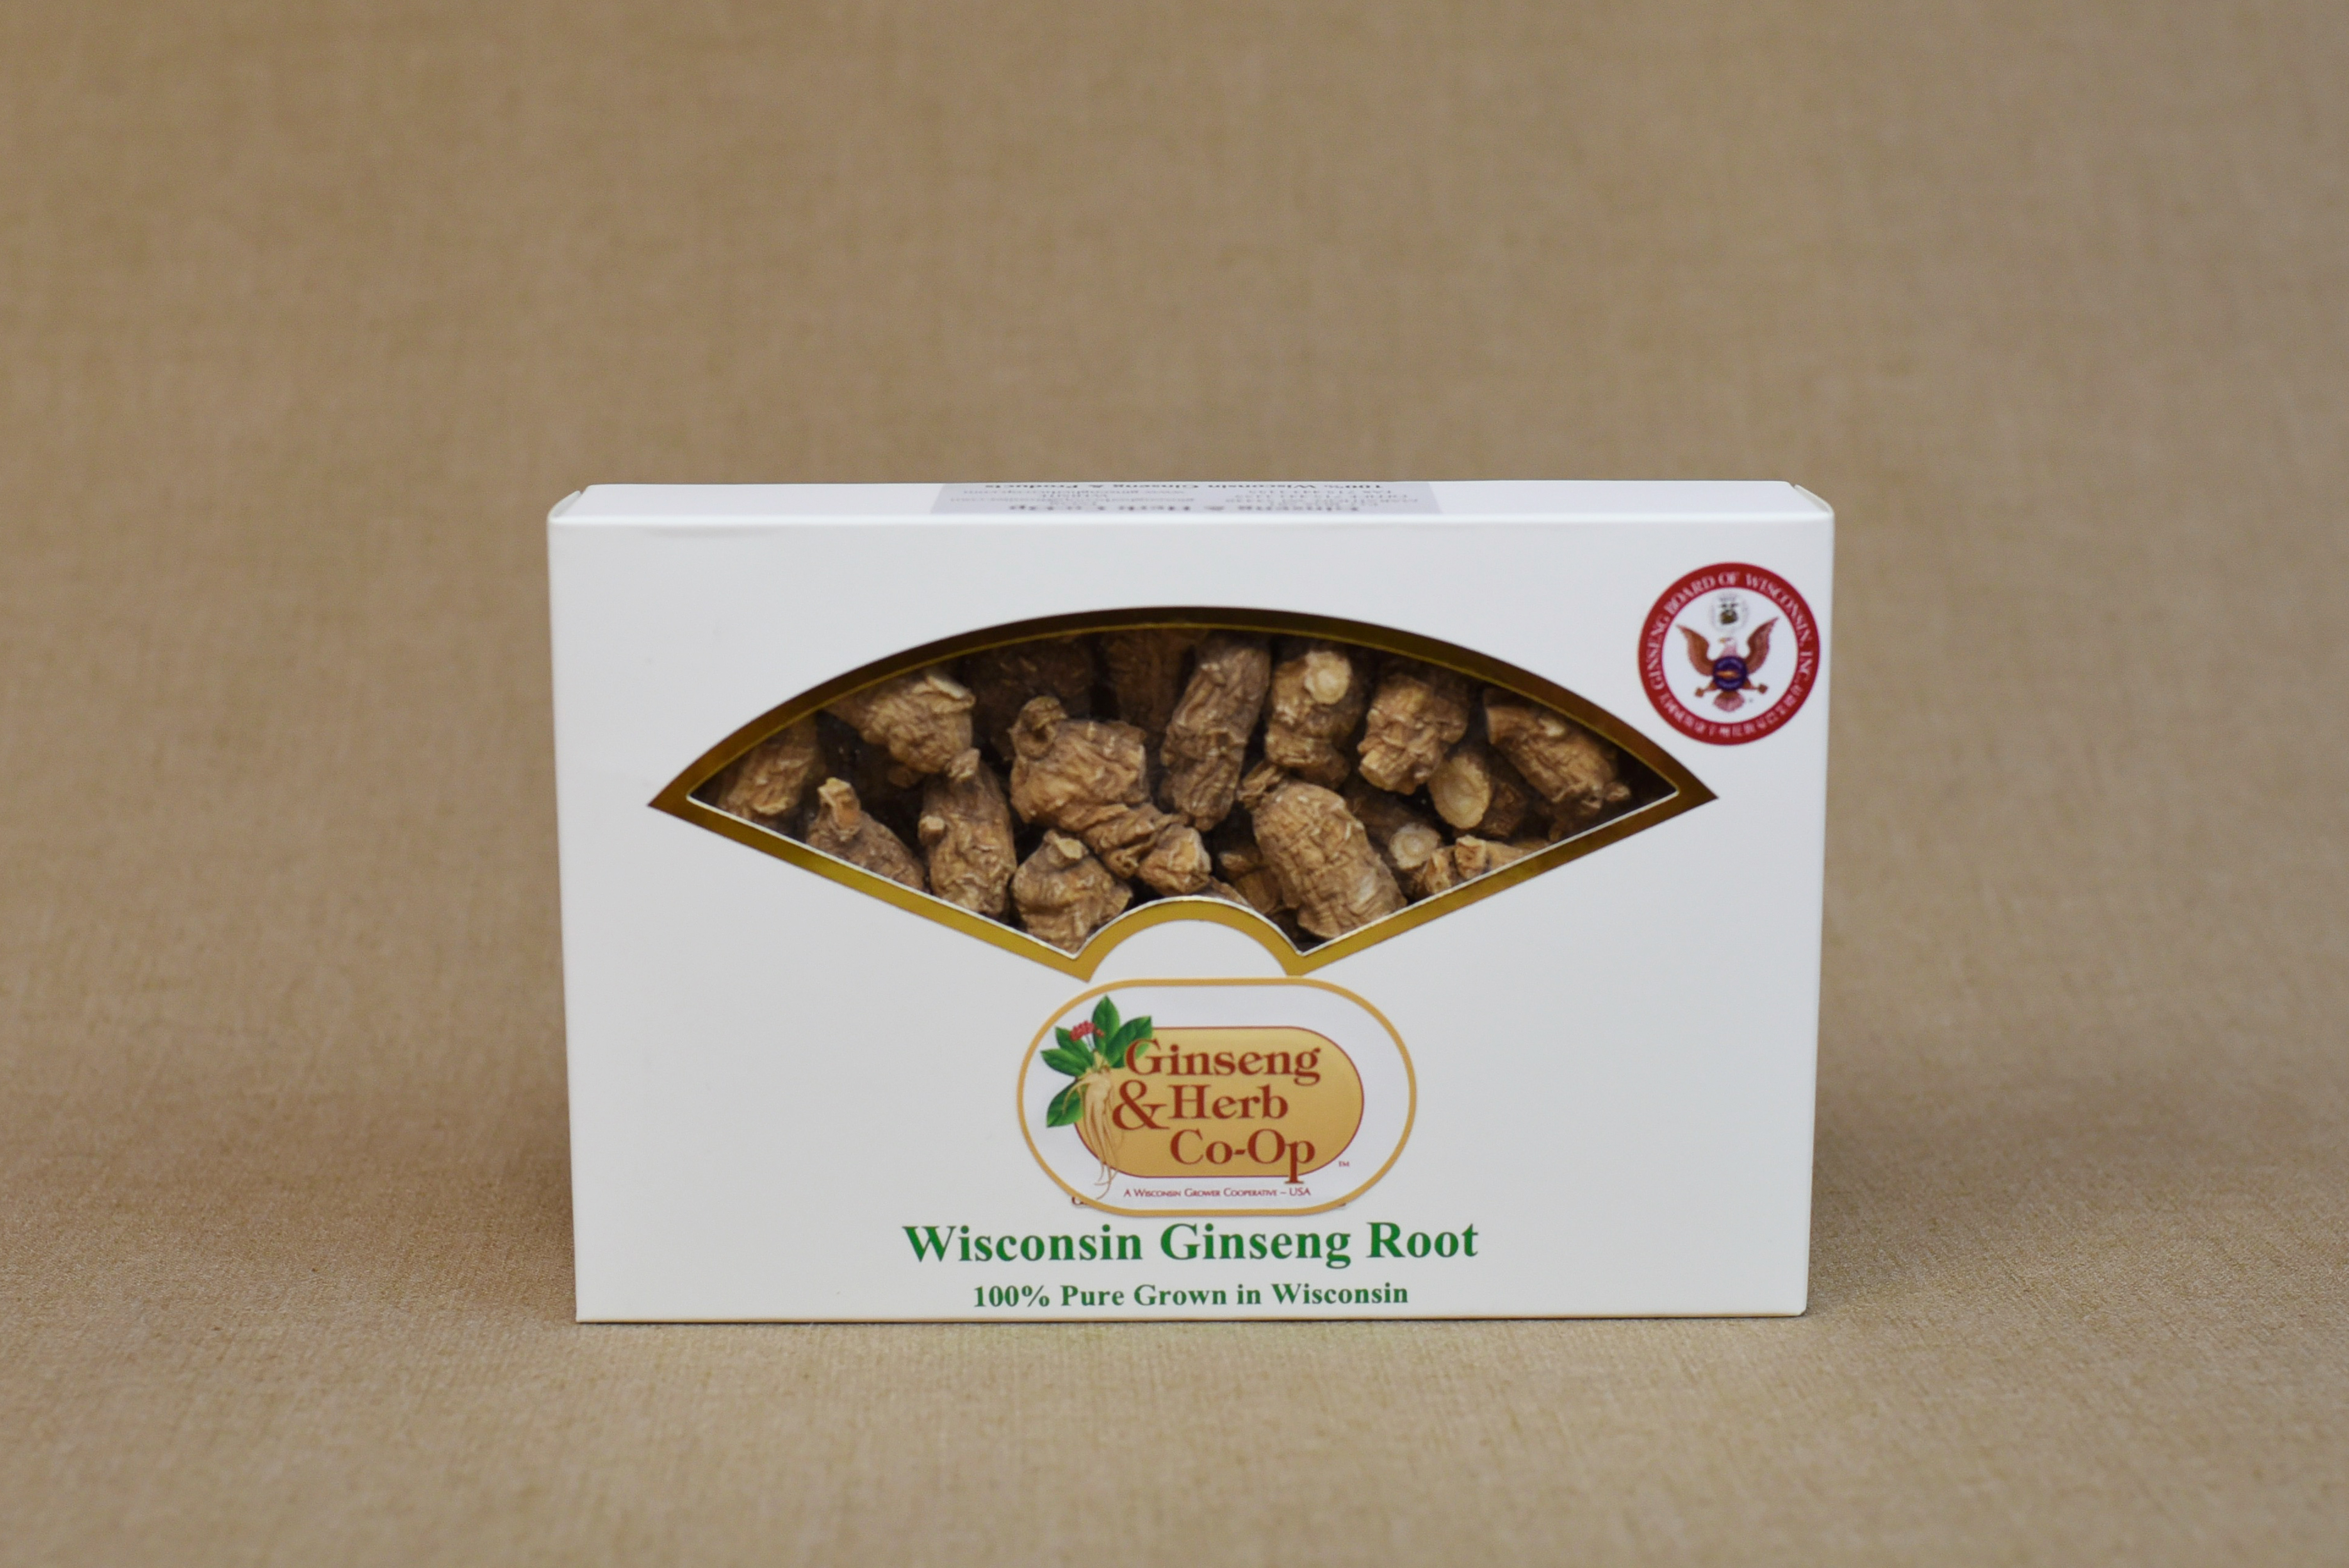 Buy Now! high quality Wisconsin Ginseng roots in Milwaukee, WI